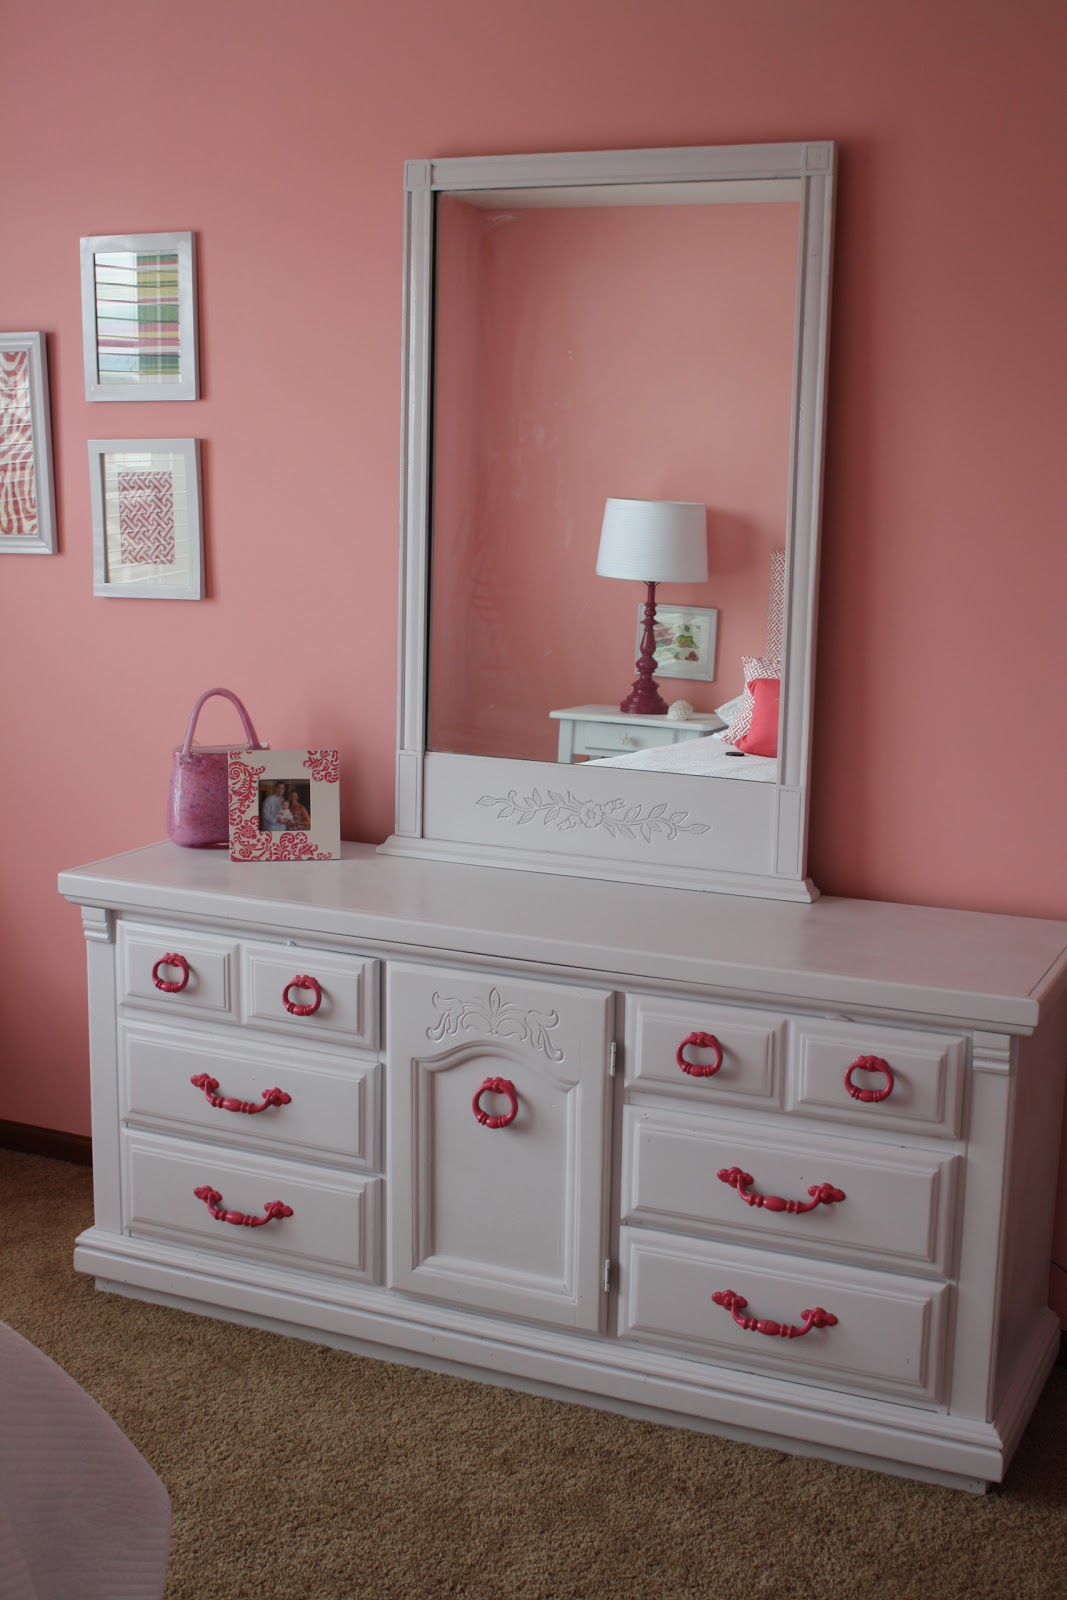 bedroom chair m&s antique rocking chairs for sale so stinkin 39 cute glam girl dresser and prints